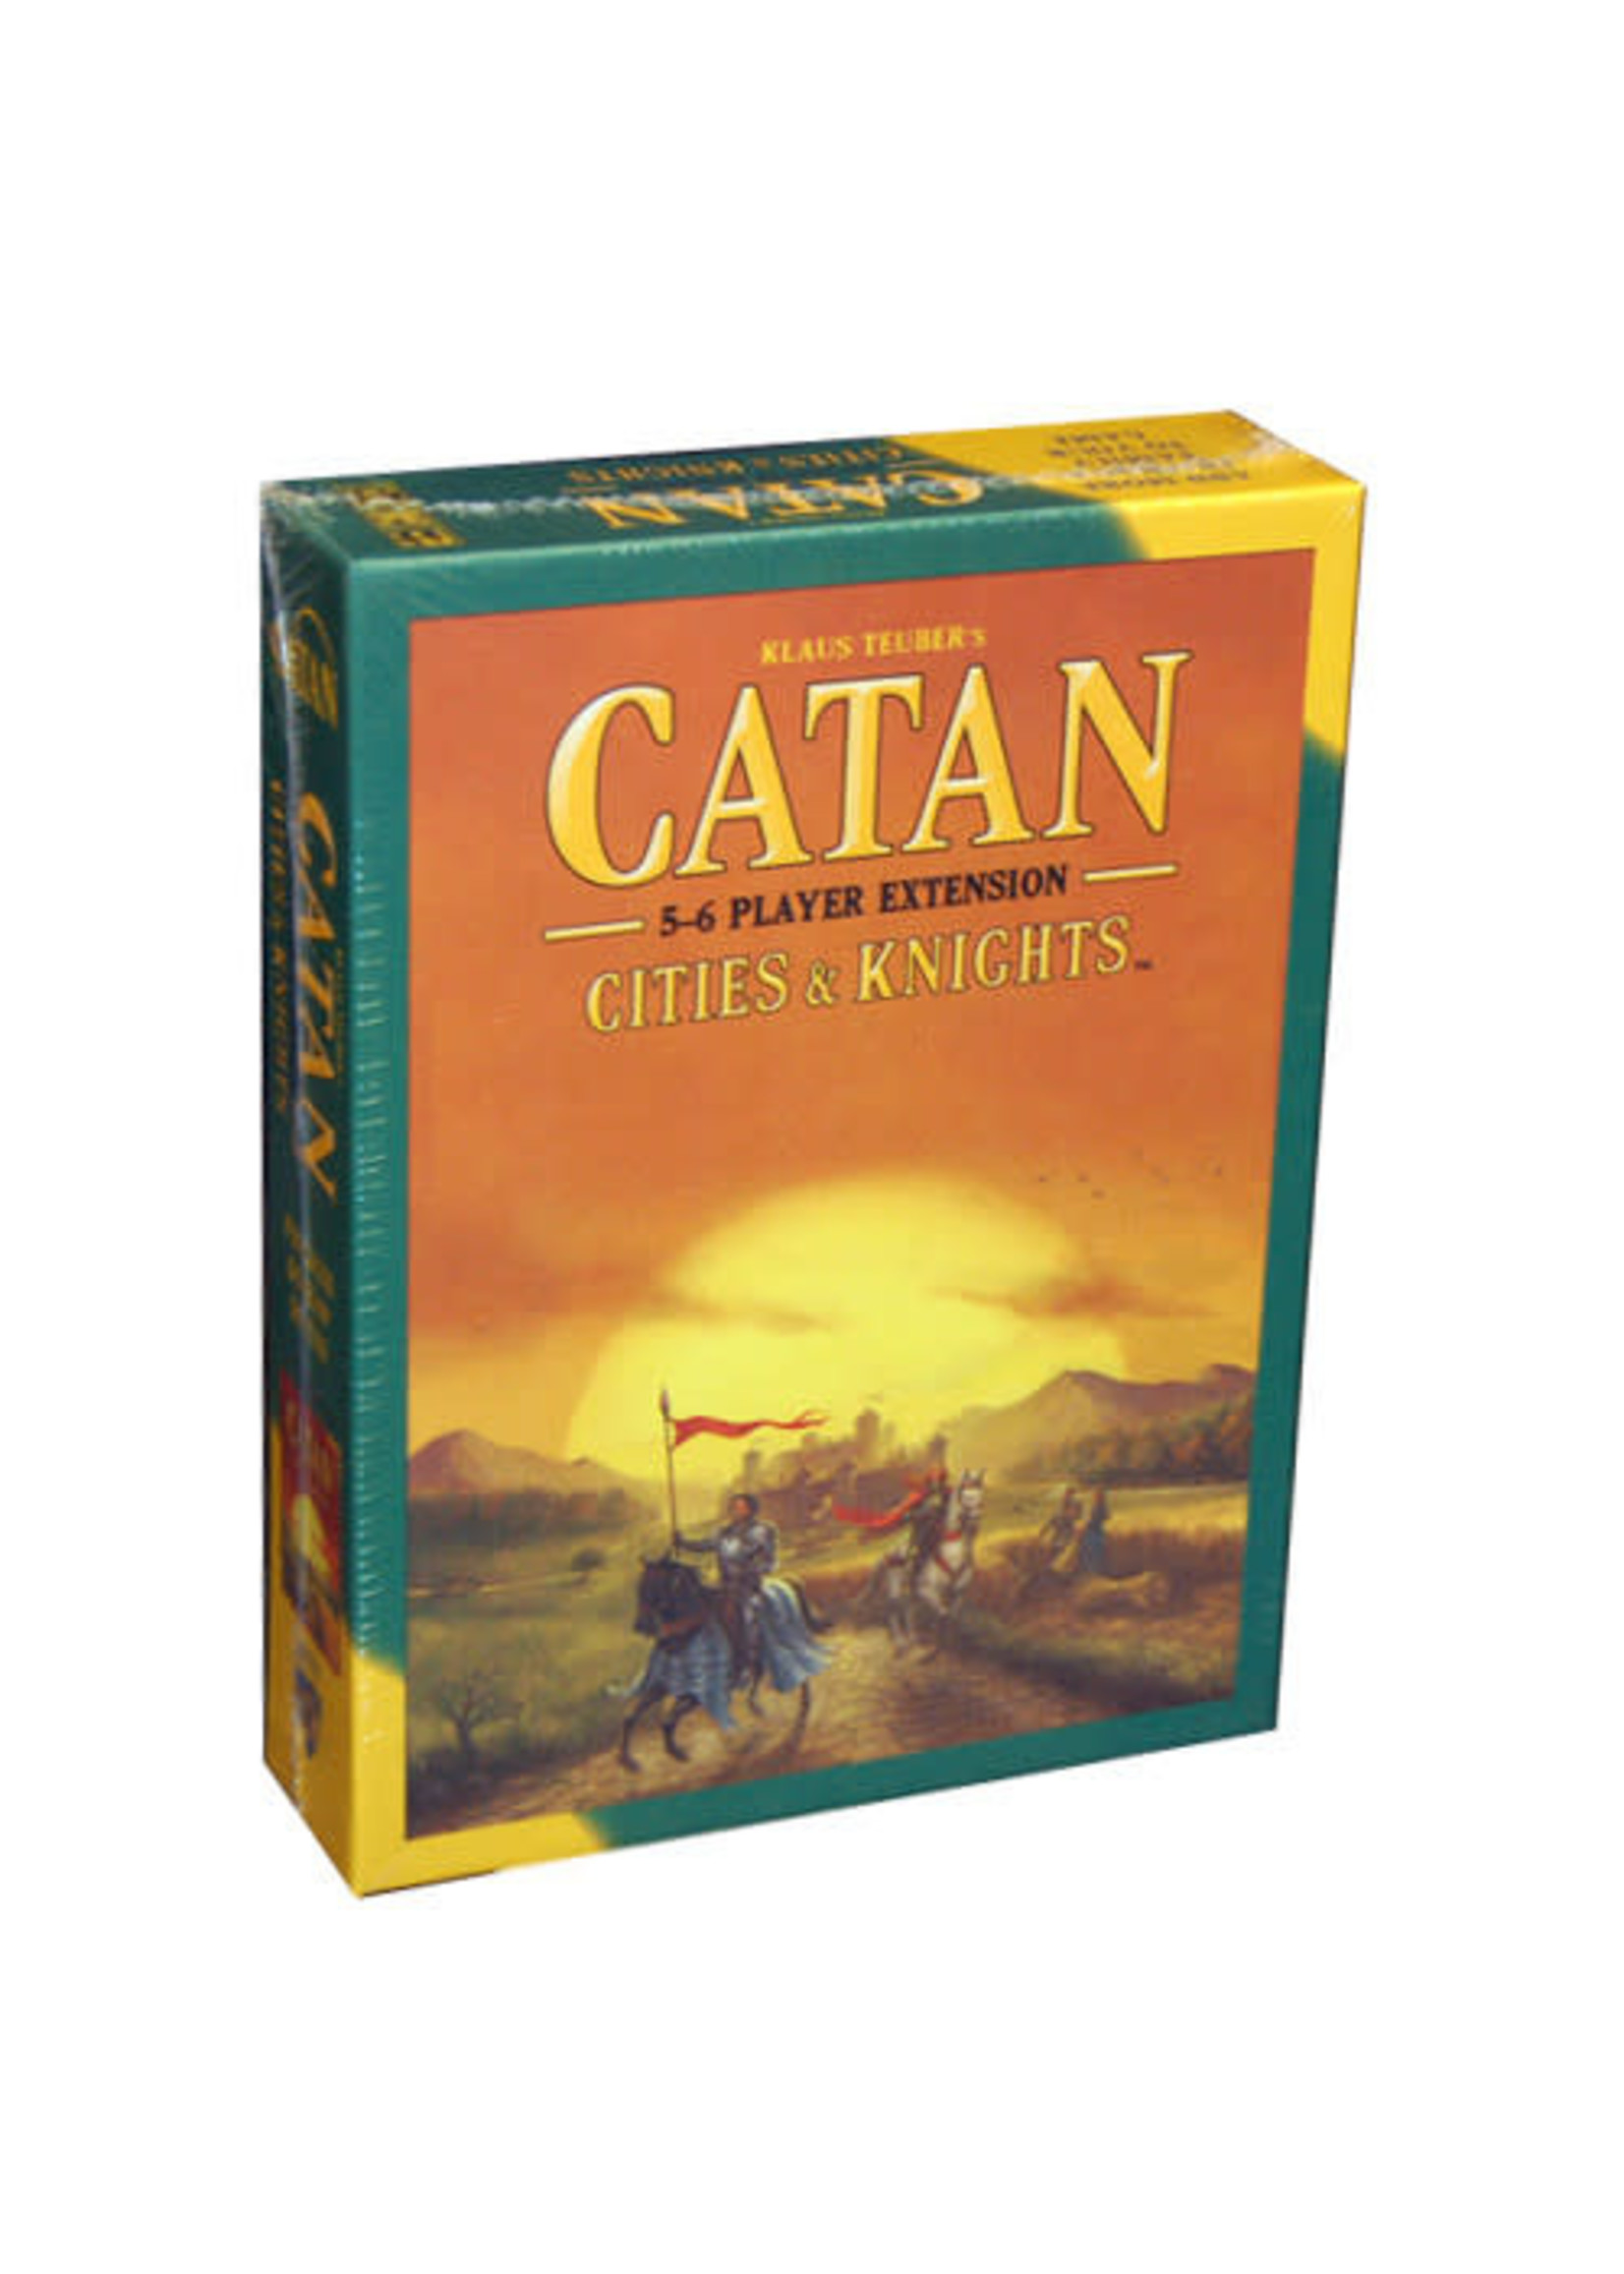 Asmodee Catan: Cities and Knights 5-6 Player Extension